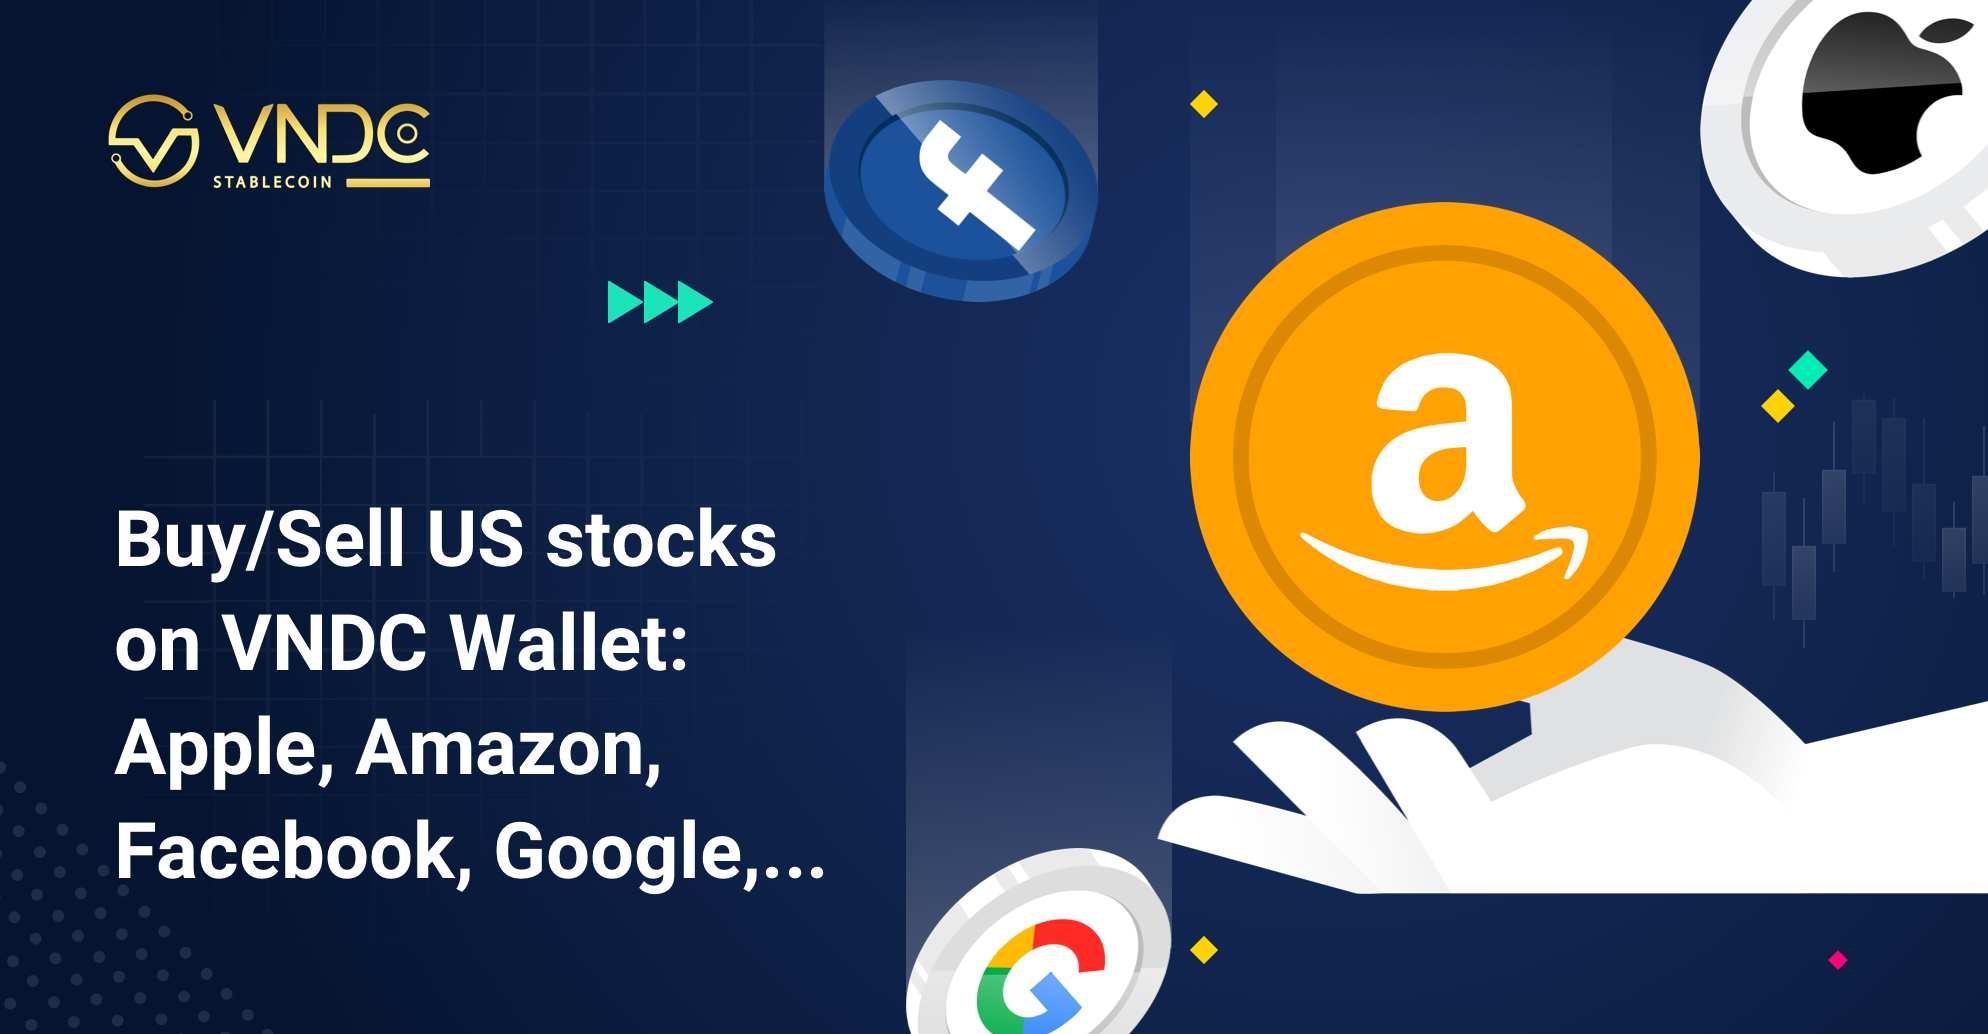 Buy/Sell US stocks on VNDC Wallet: Apple, Amazon, Facebook, Google,…